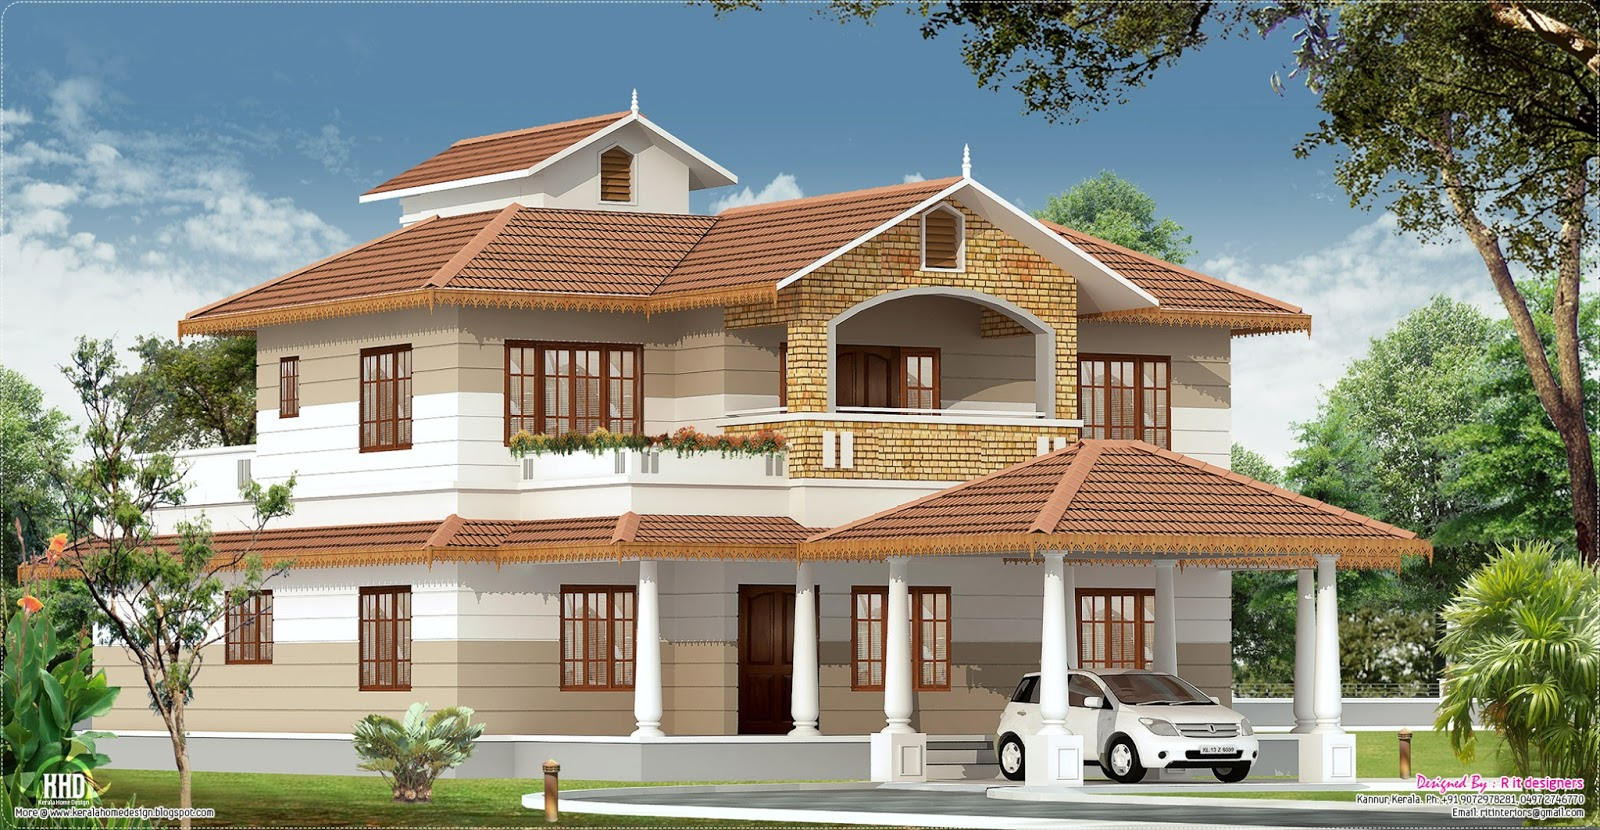 2700 kerala home with interior designs kerala for Latest house designs in kerala